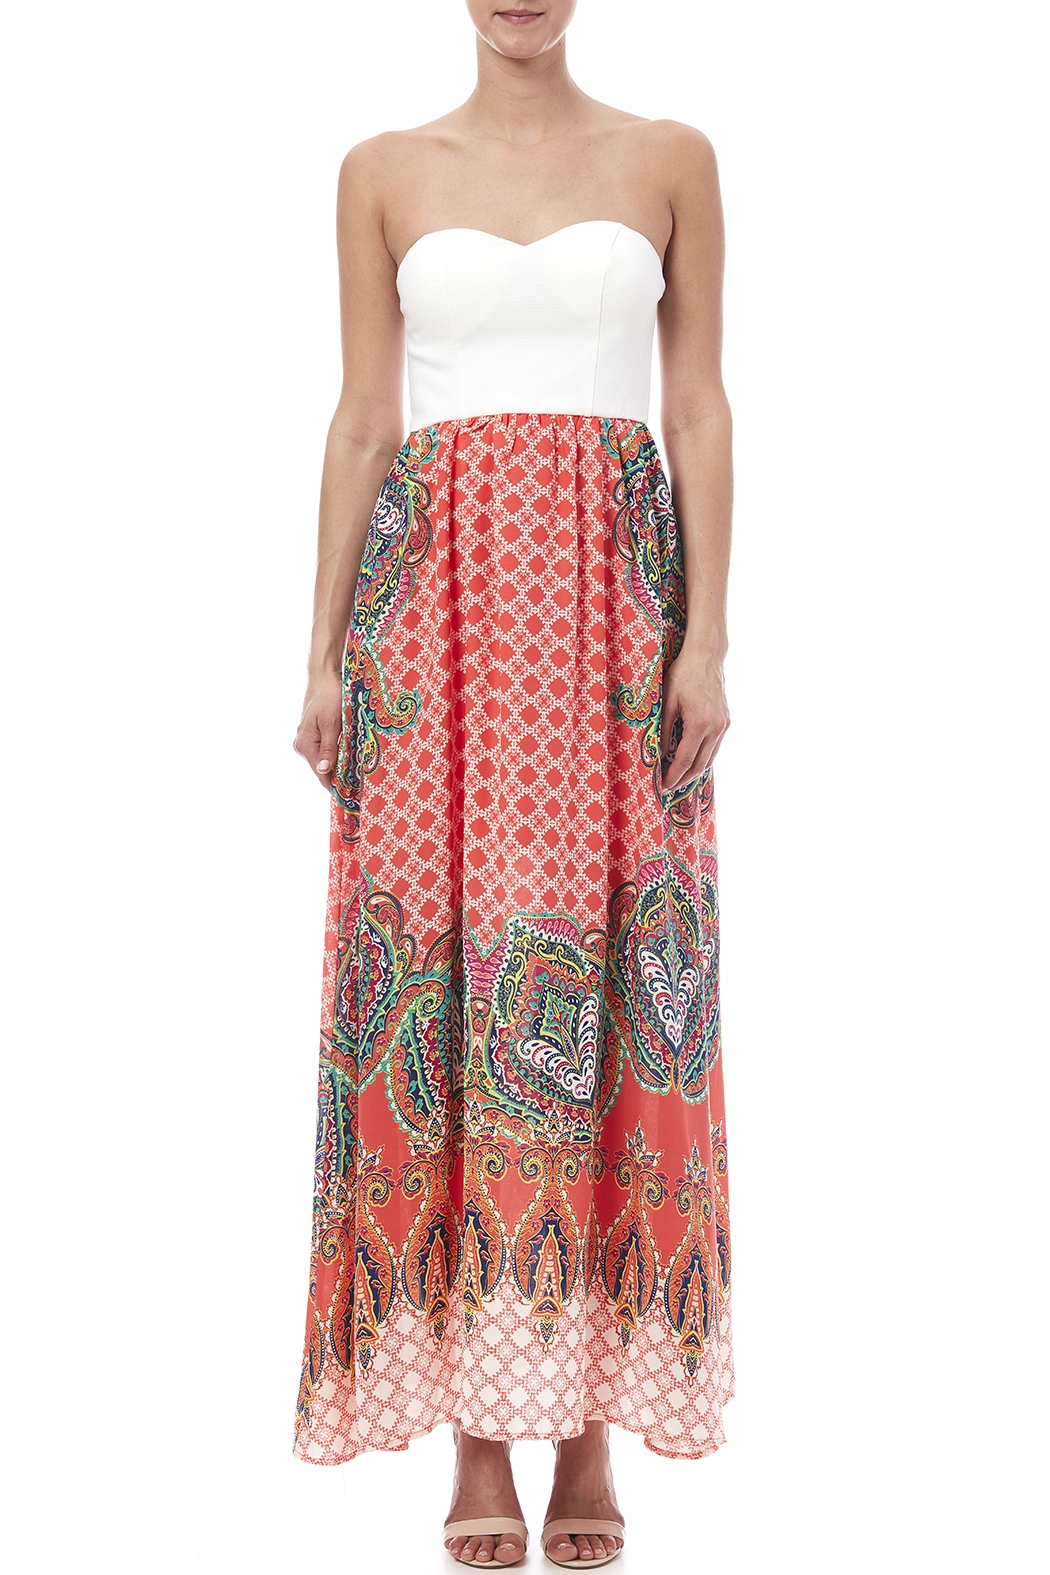 a322a20bc7 Xtaren Strapless Printed Skirt Maxi from New York by Dor L Dor ...